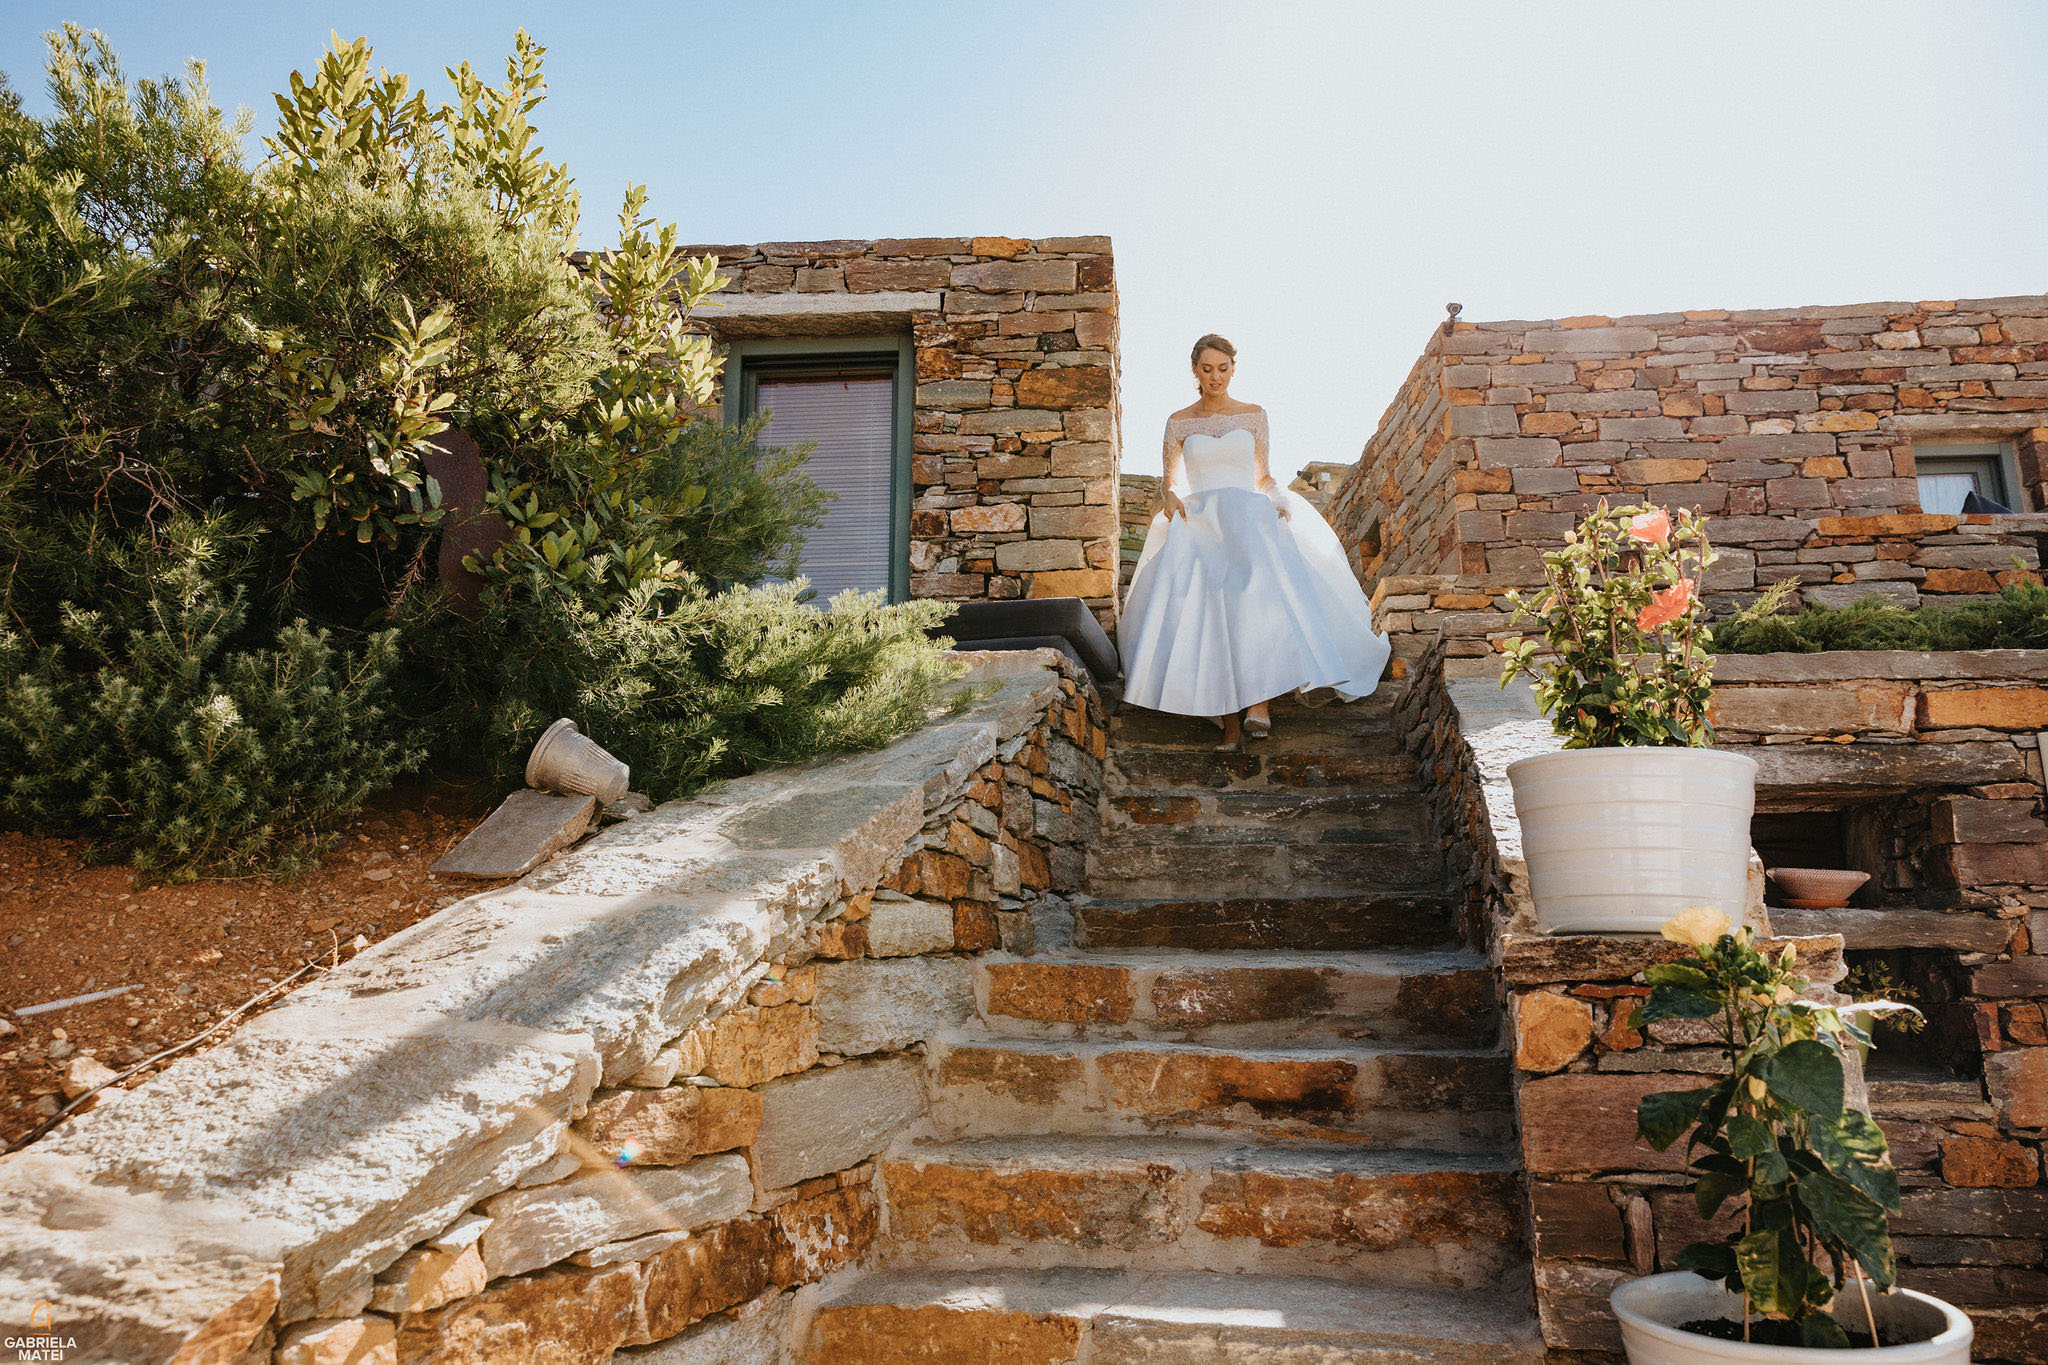 Bride holding her dress, coming down the stairs on Kea Island, Greece